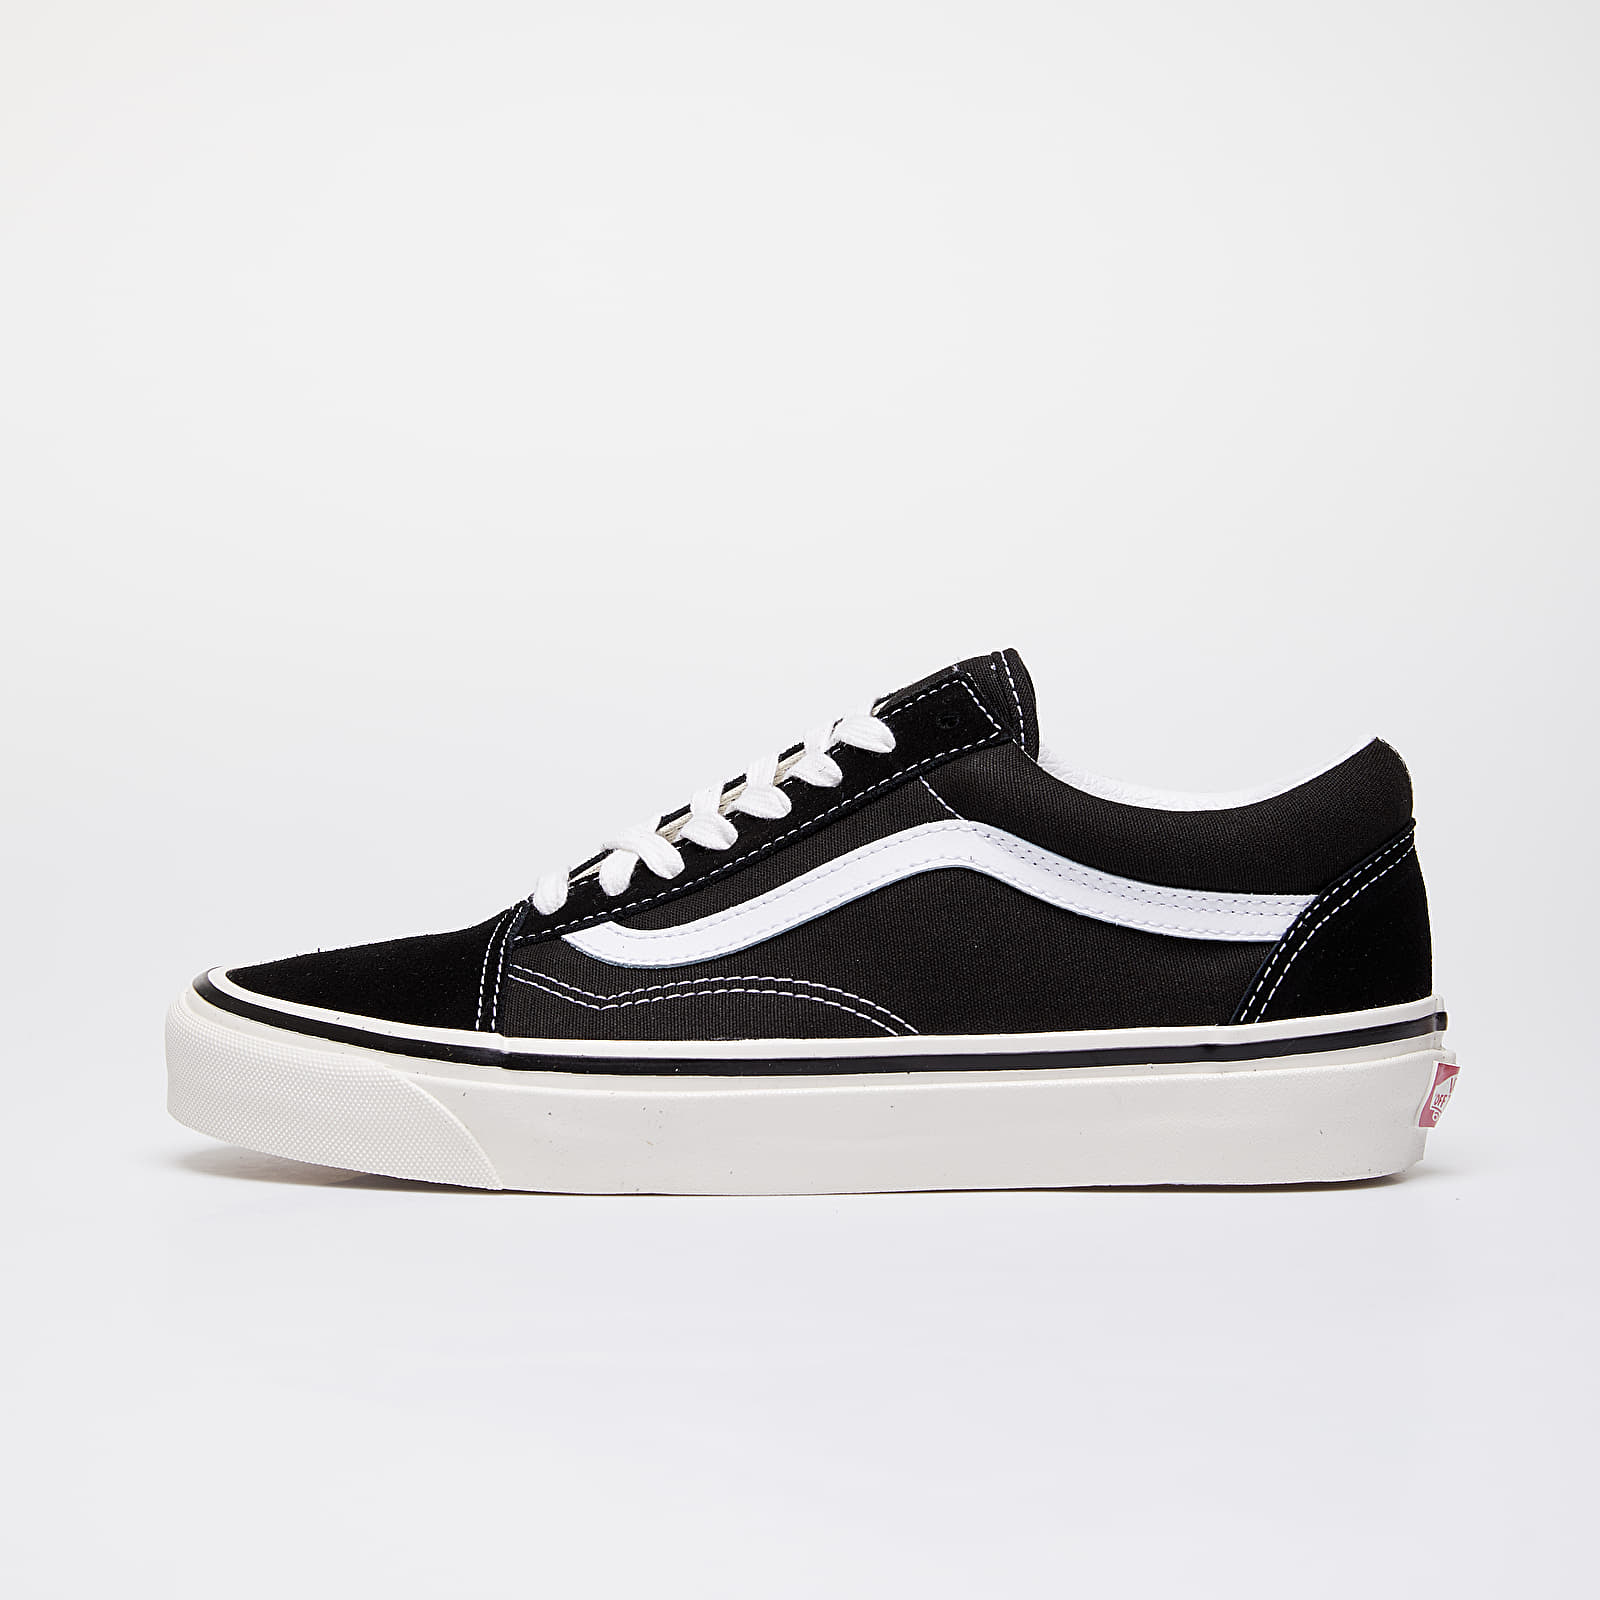 Muške tenisice Vans Old Skool 36 DX Black/ True White